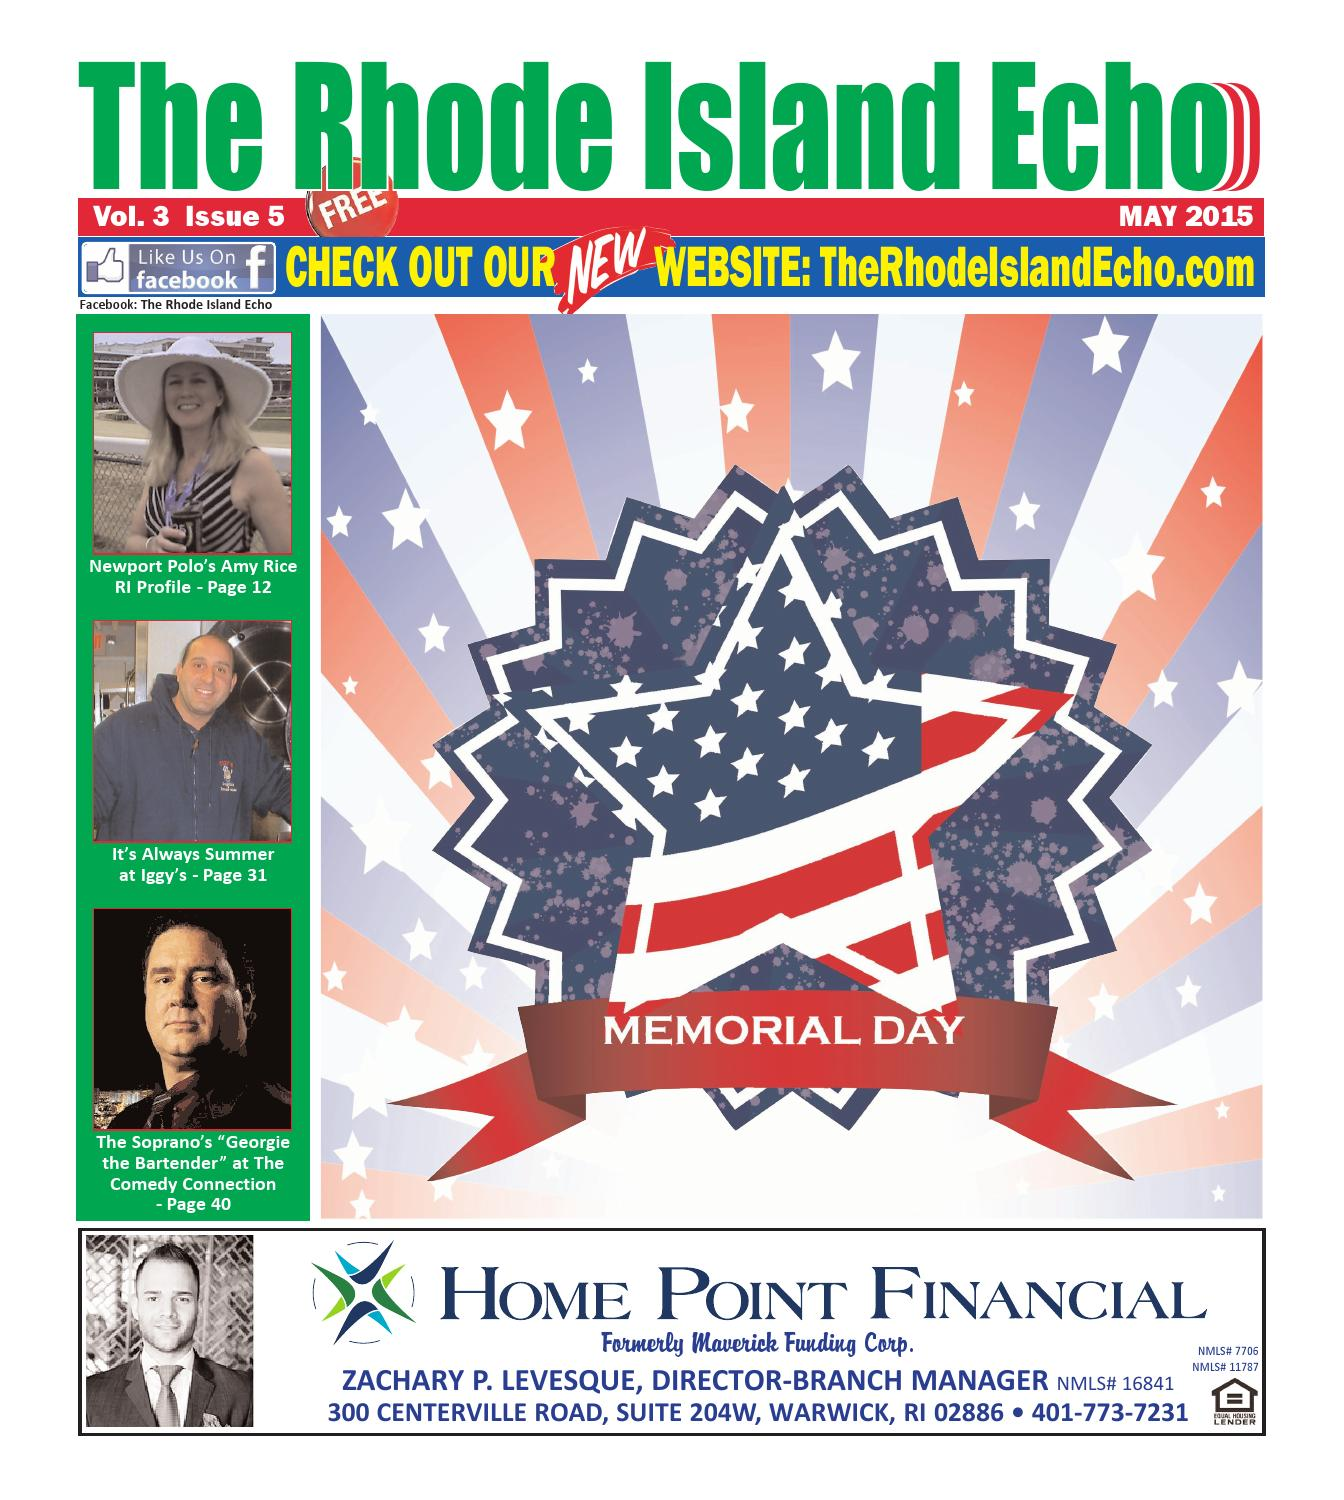 The rhode island echo may 2015 by michael poulin issuu fandeluxe Choice Image